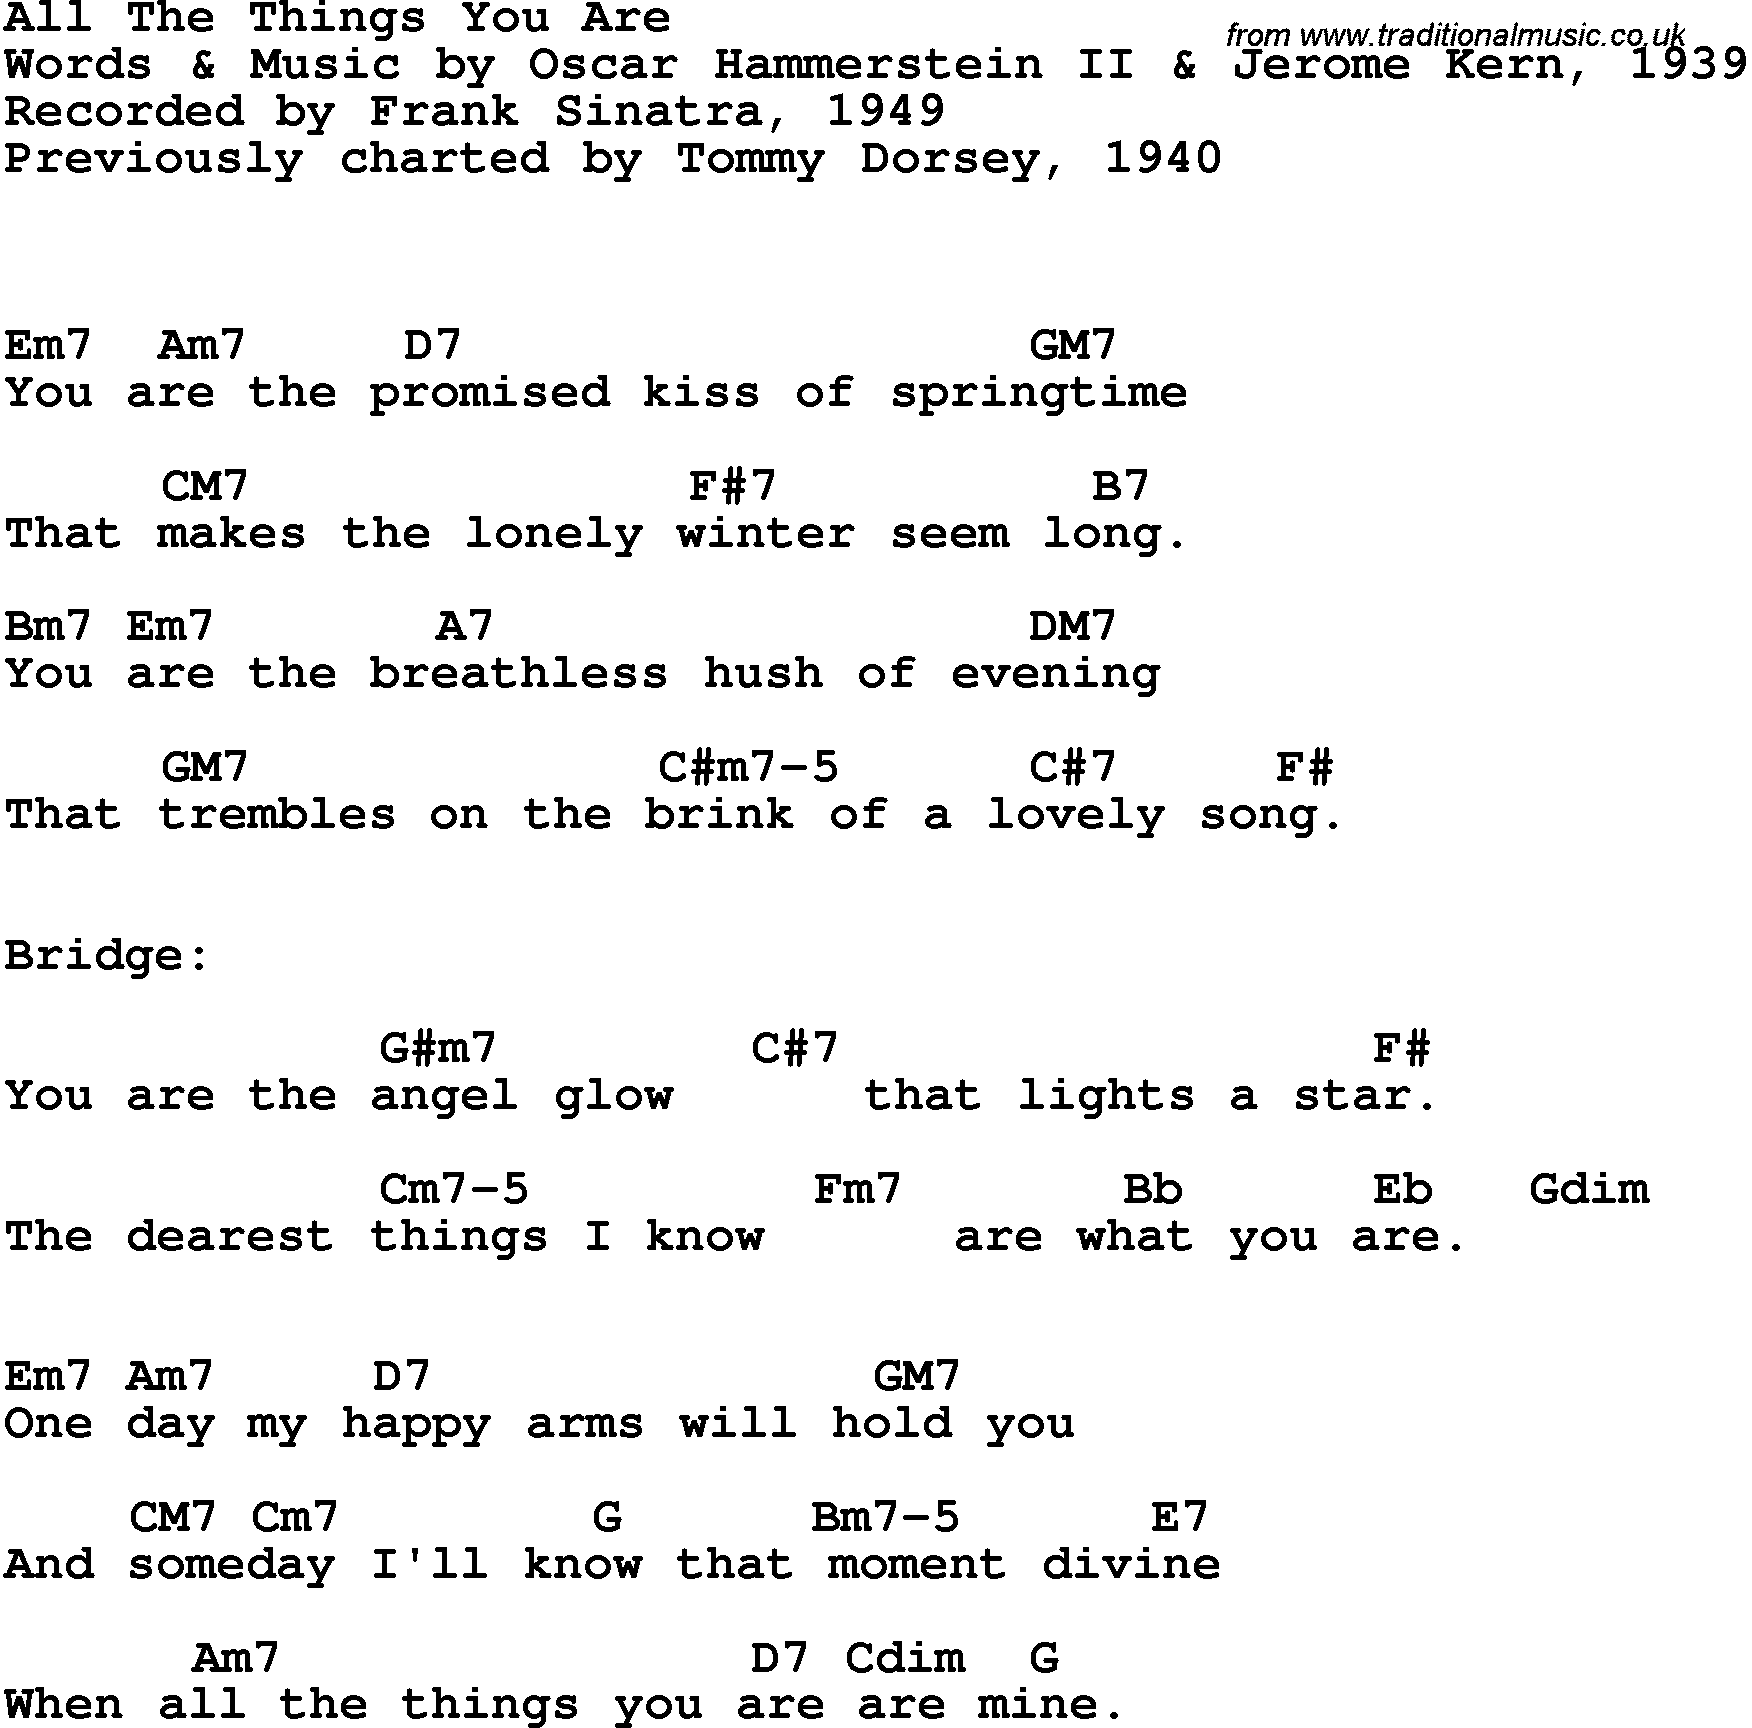 Song lyrics with guitar chords for all the things you are frank song lyrics with guitar chords for all the things you are frank sinatra 1949 hexwebz Choice Image